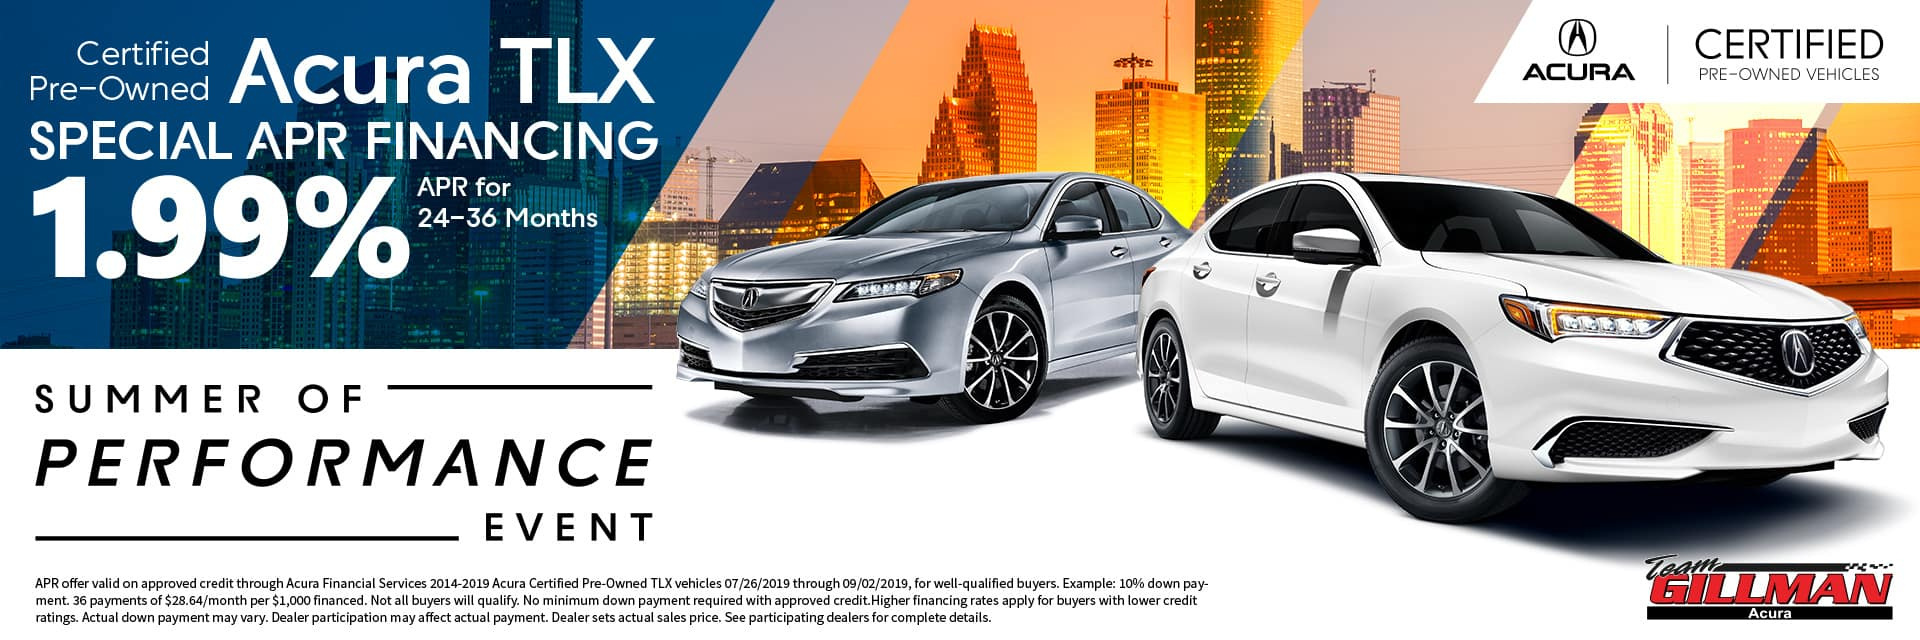 Certified-Pre-Owned-Acura-TLX